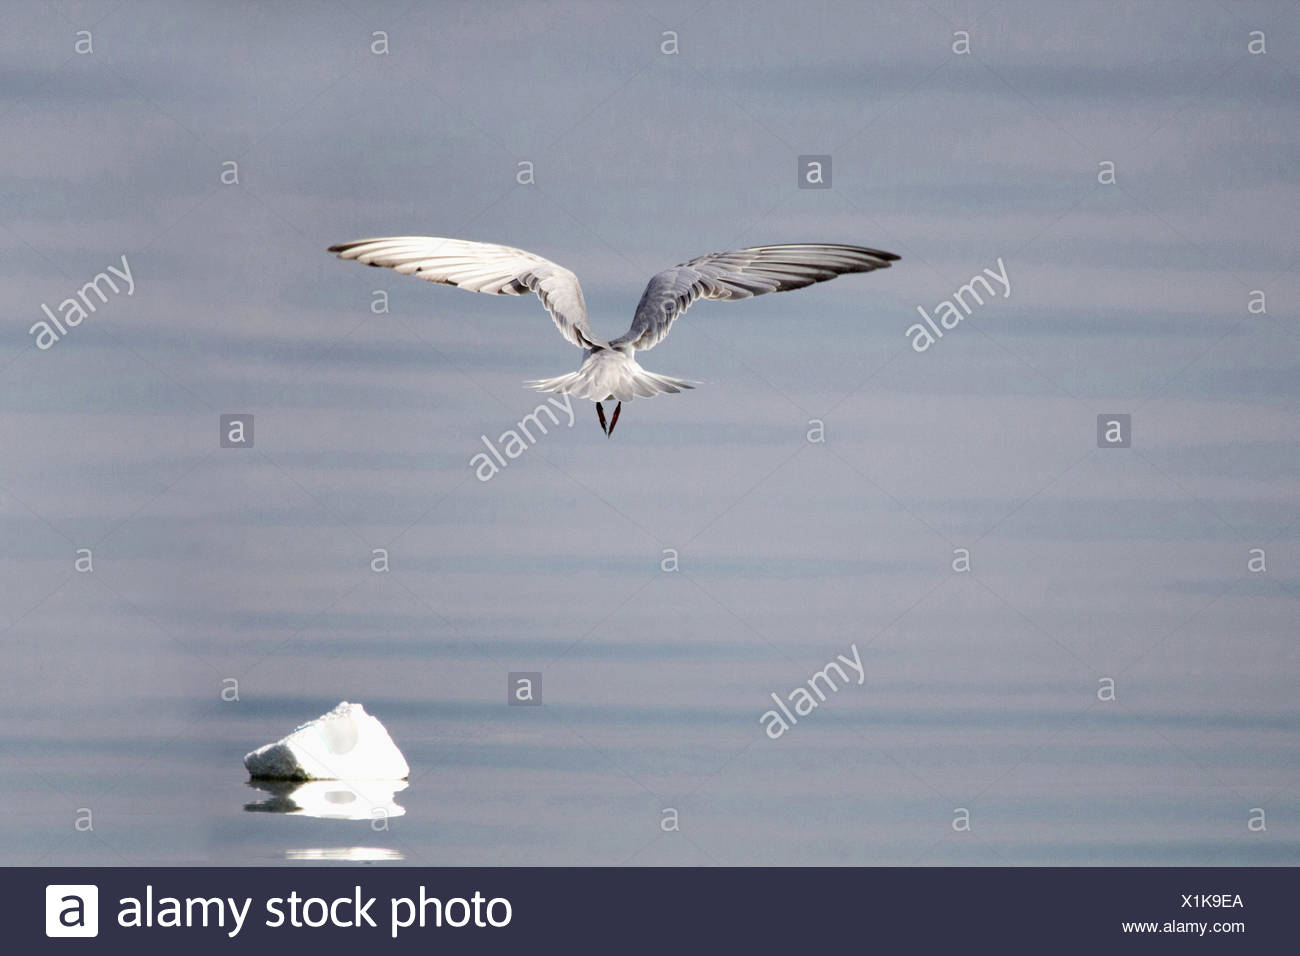 Gulls or seagulls are seabirds of the family Laridae in the sub-order Lari. Stock Photo